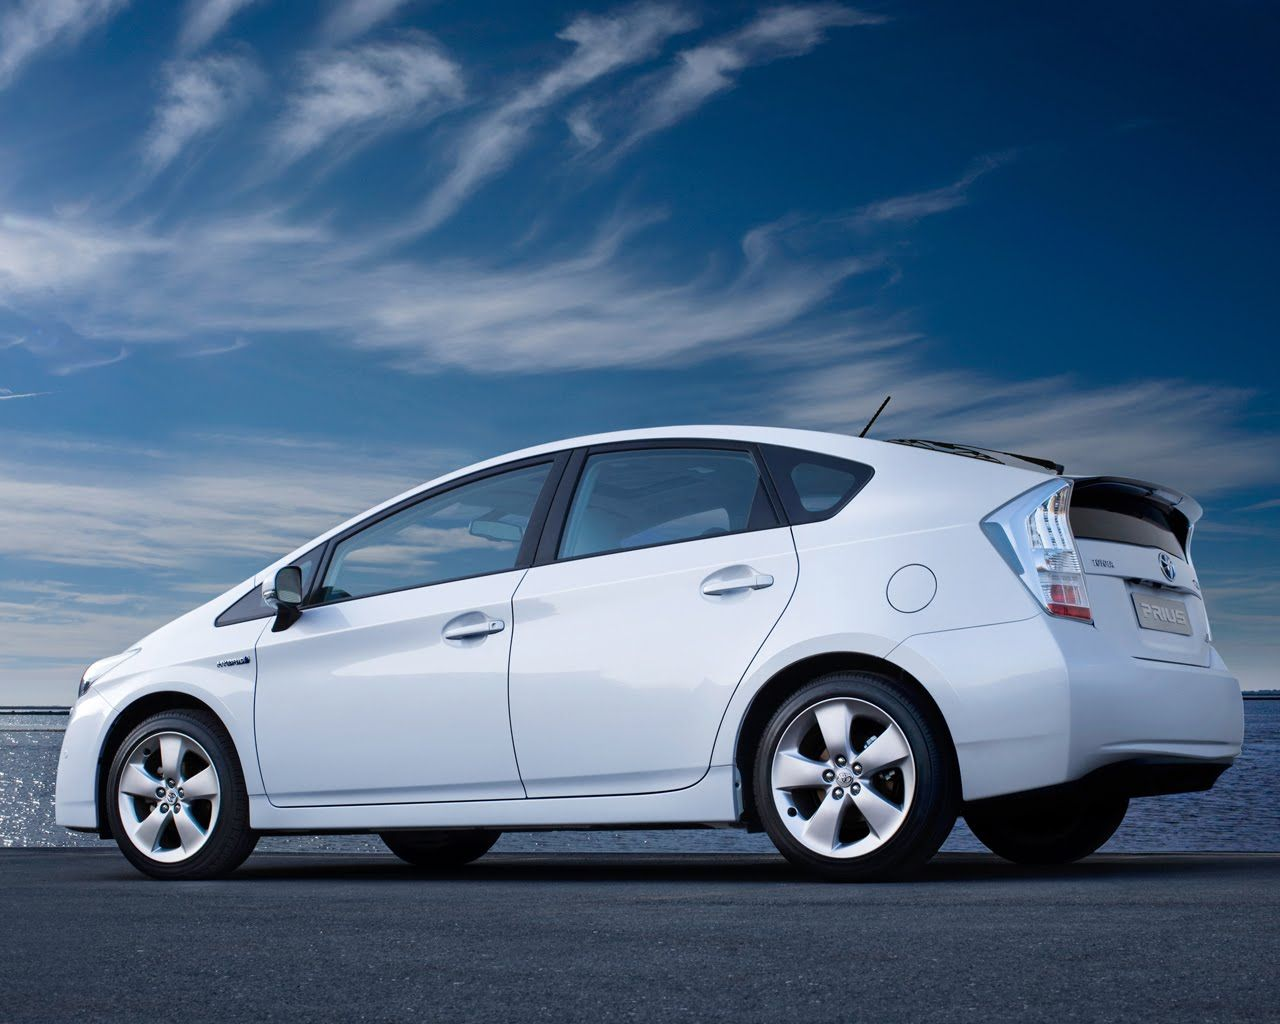 The Renowned Hybrid Toyota Prius World S First M Produced 1997 5 Star Safety Rated 3 Million Prii Have Been Sold Worldwide 2017